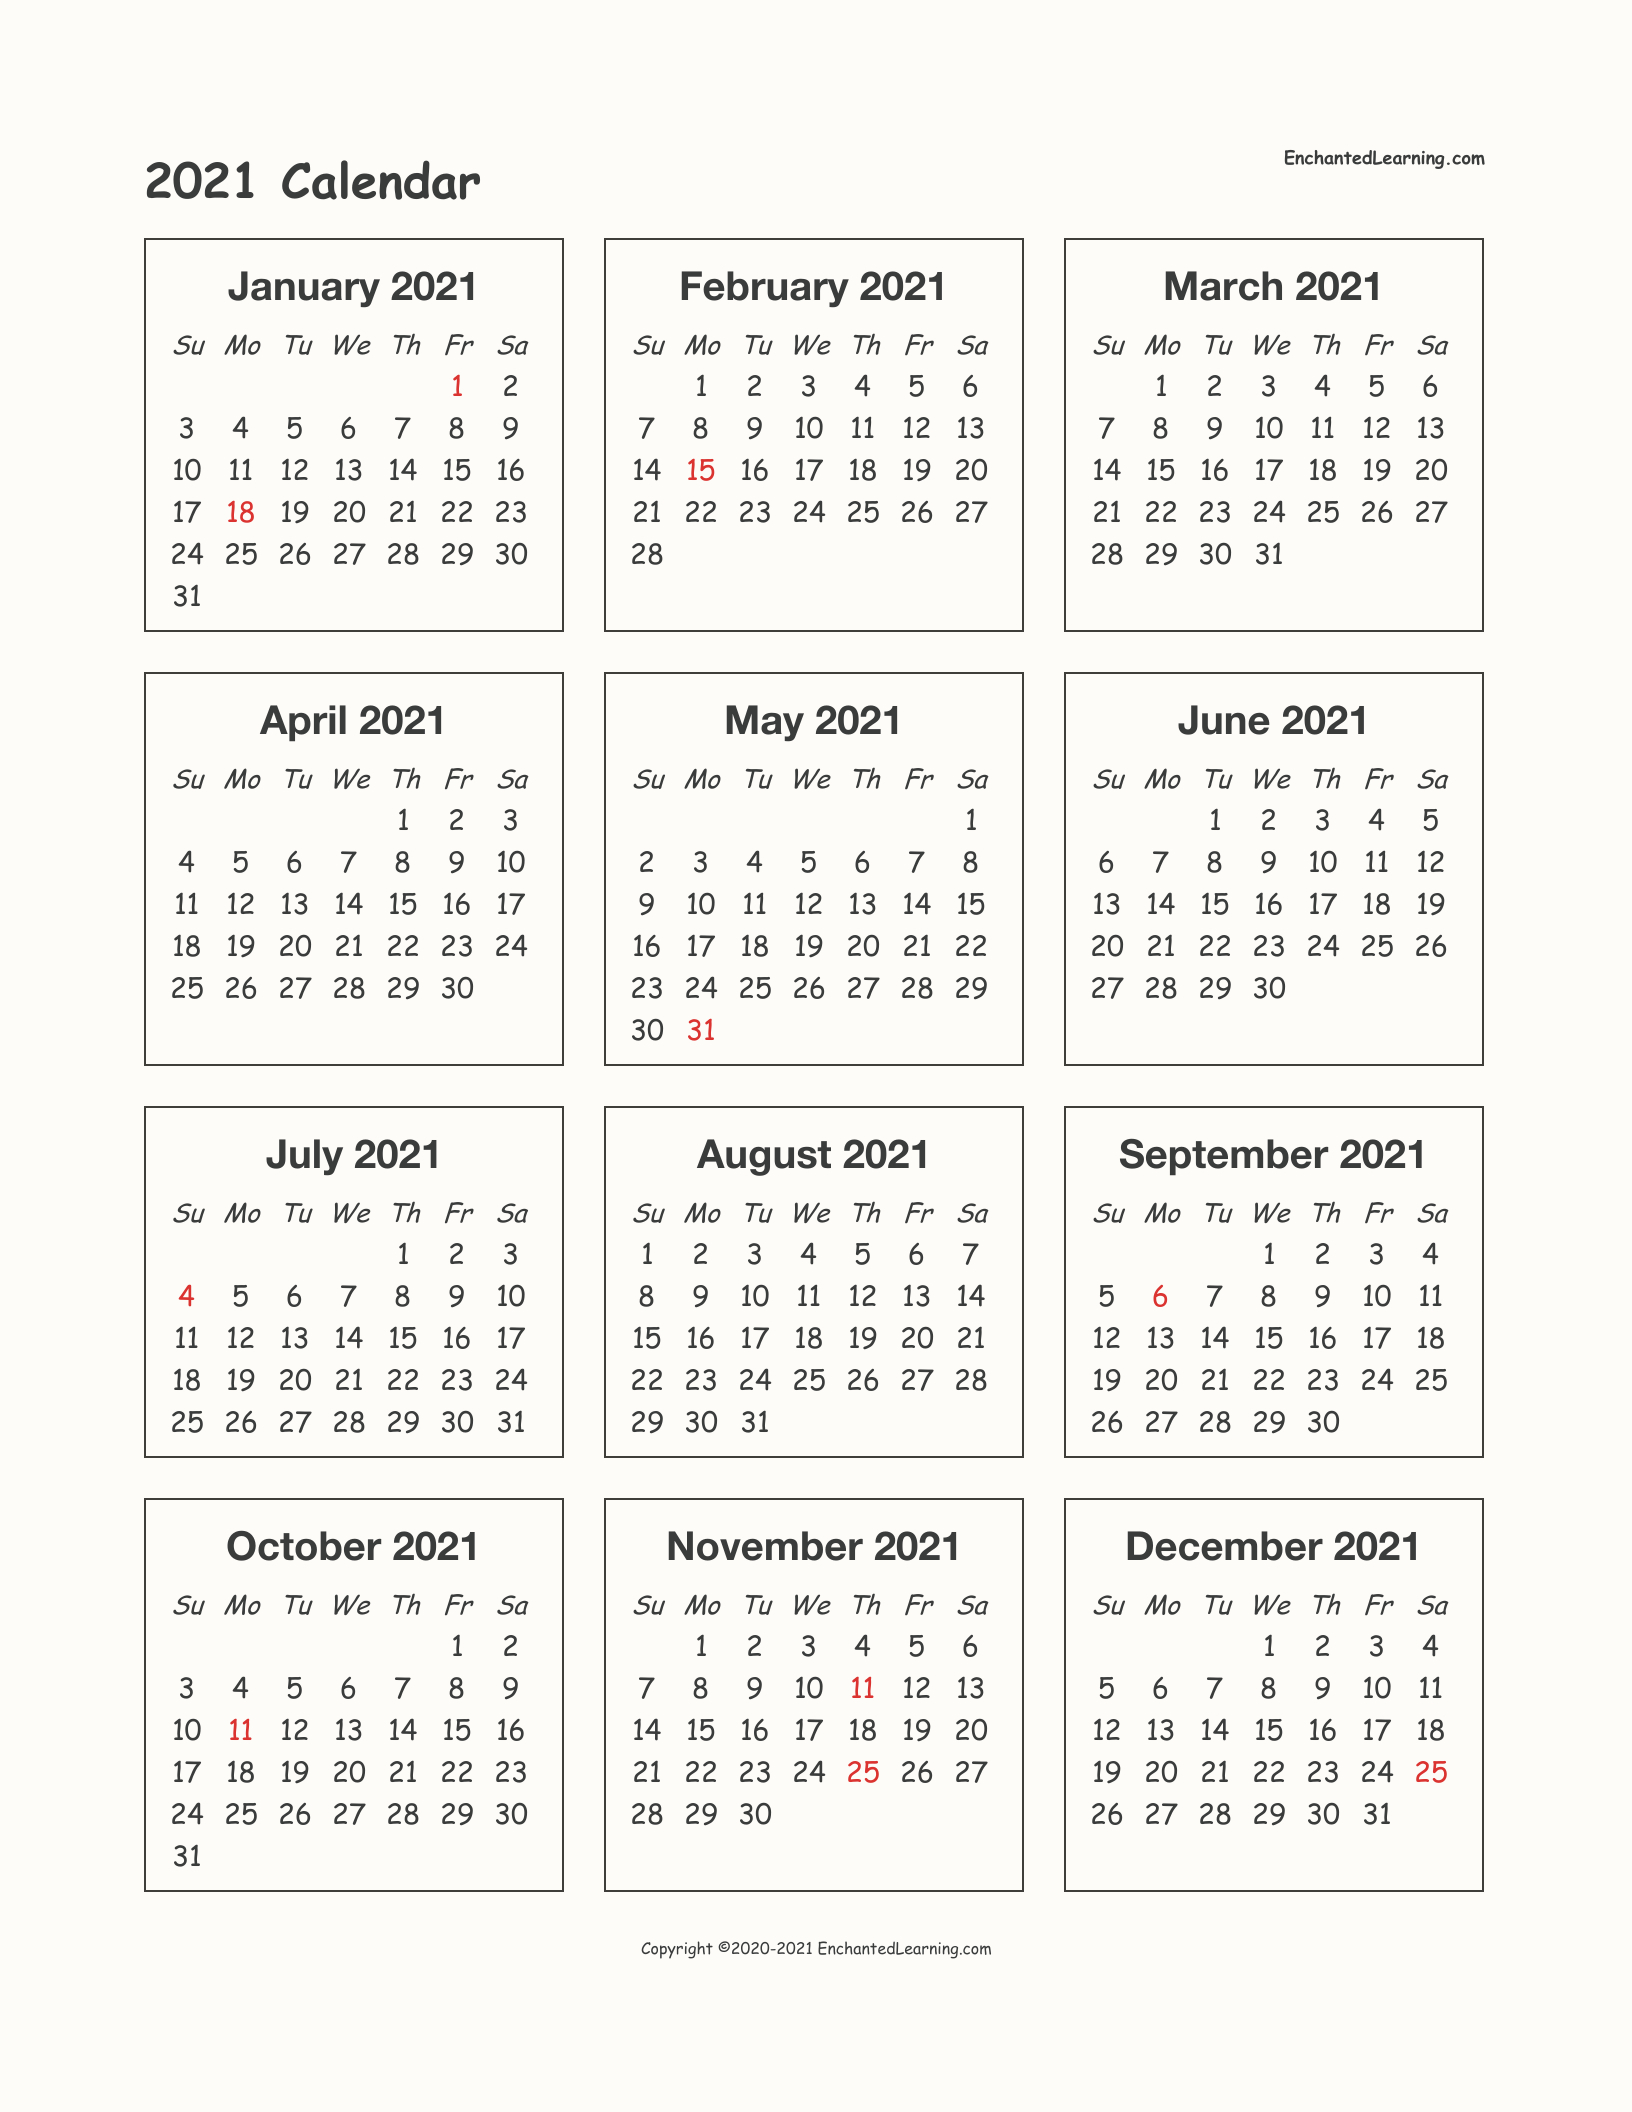 2021 One-Page Calendar - Enchanted Learning